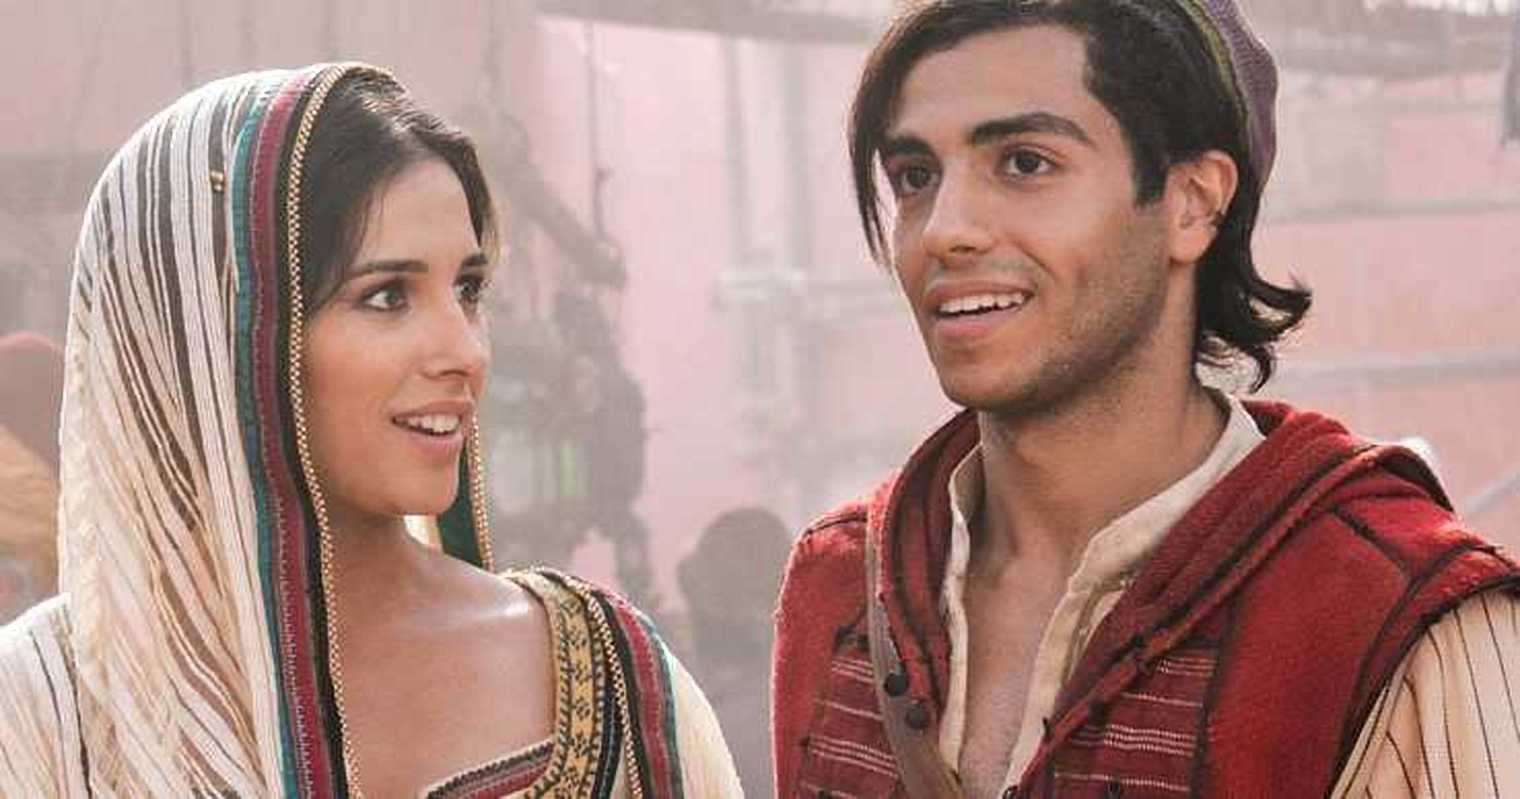 Naomi Scott ( Jasmine) and Mena Massoud (Aladdin)